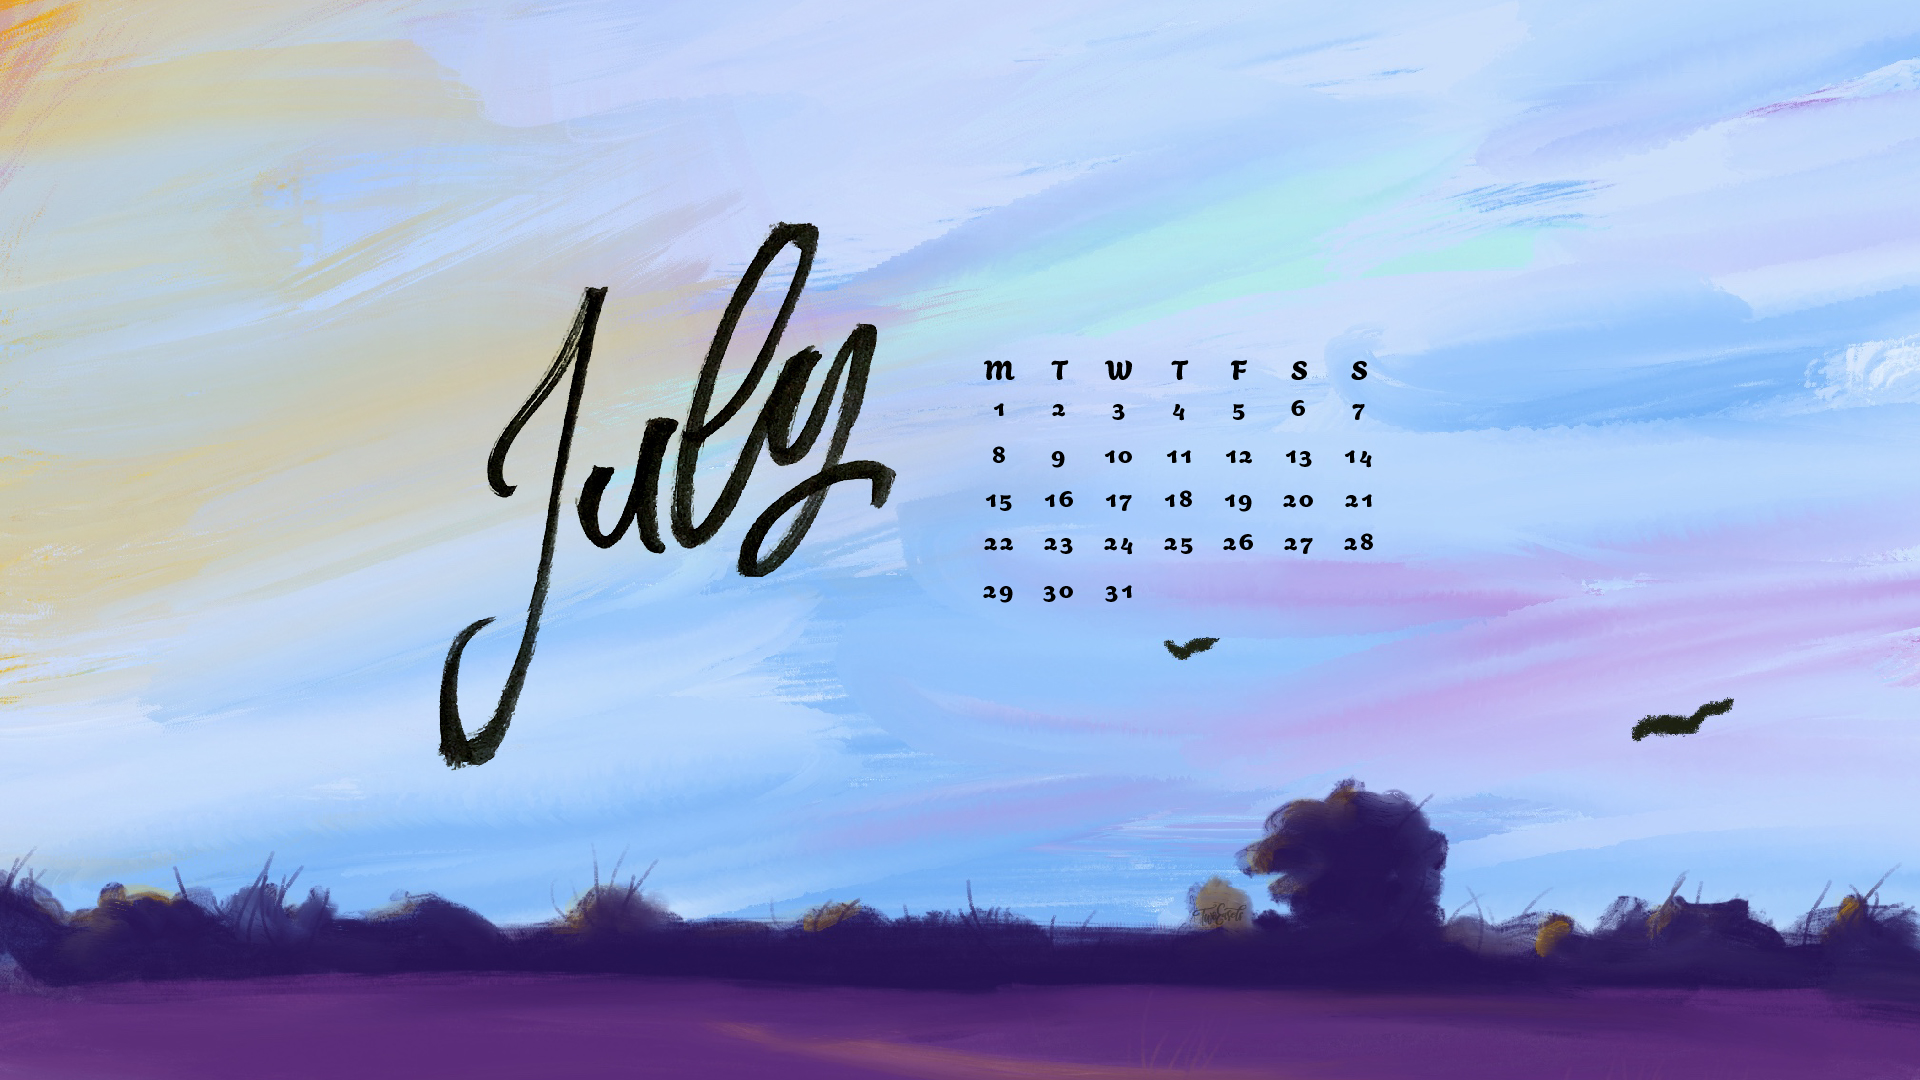 Free July 2019 wallpaper for phone and desktop